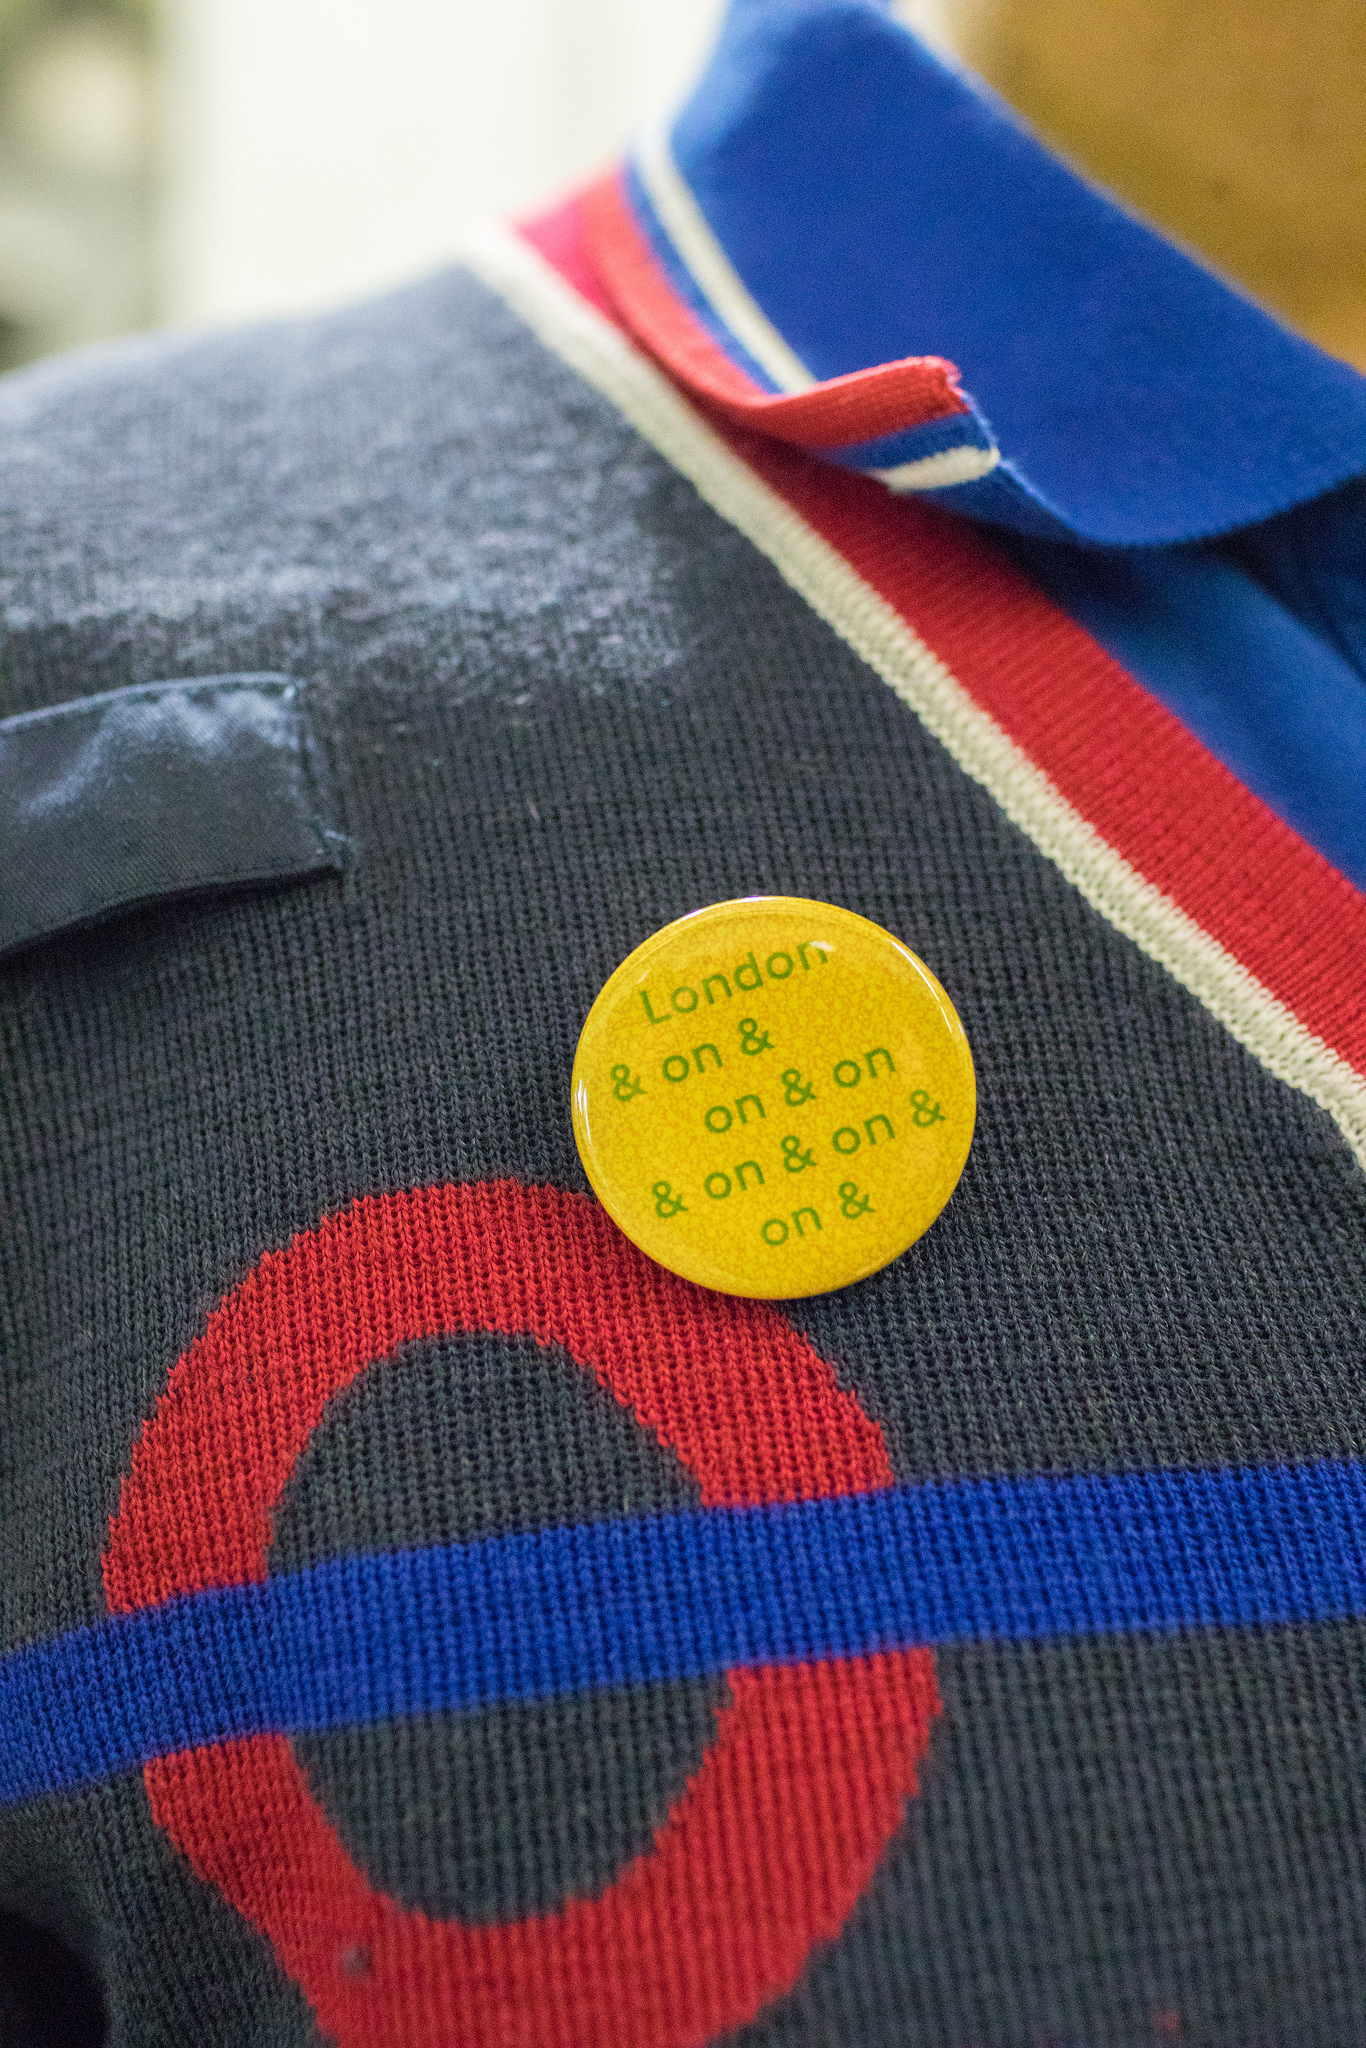 Jeremy Deller badge for #LondonIsOpen